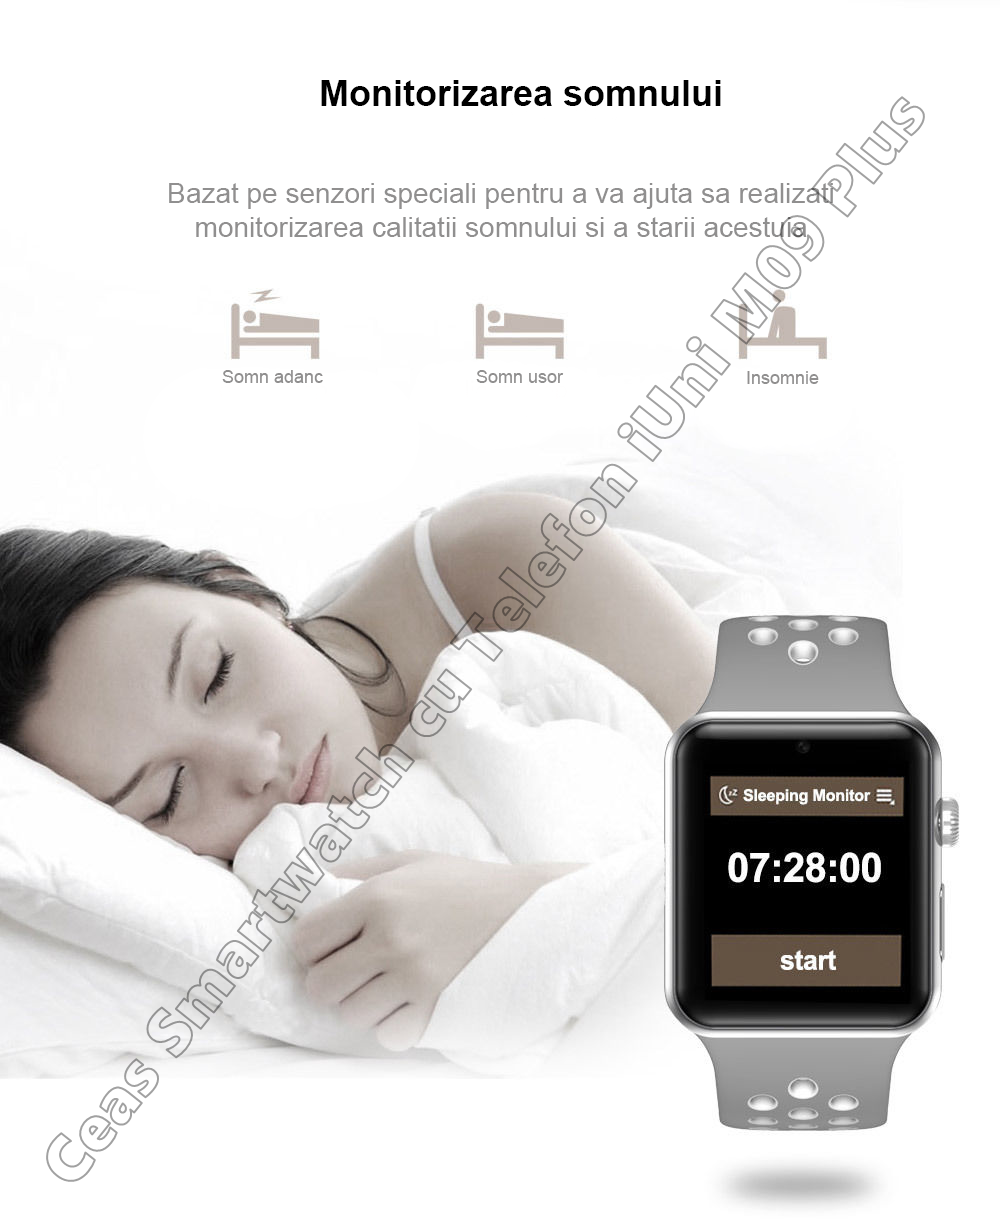 Ceas Smartwatch Telefon iUni DM09 Plus-4